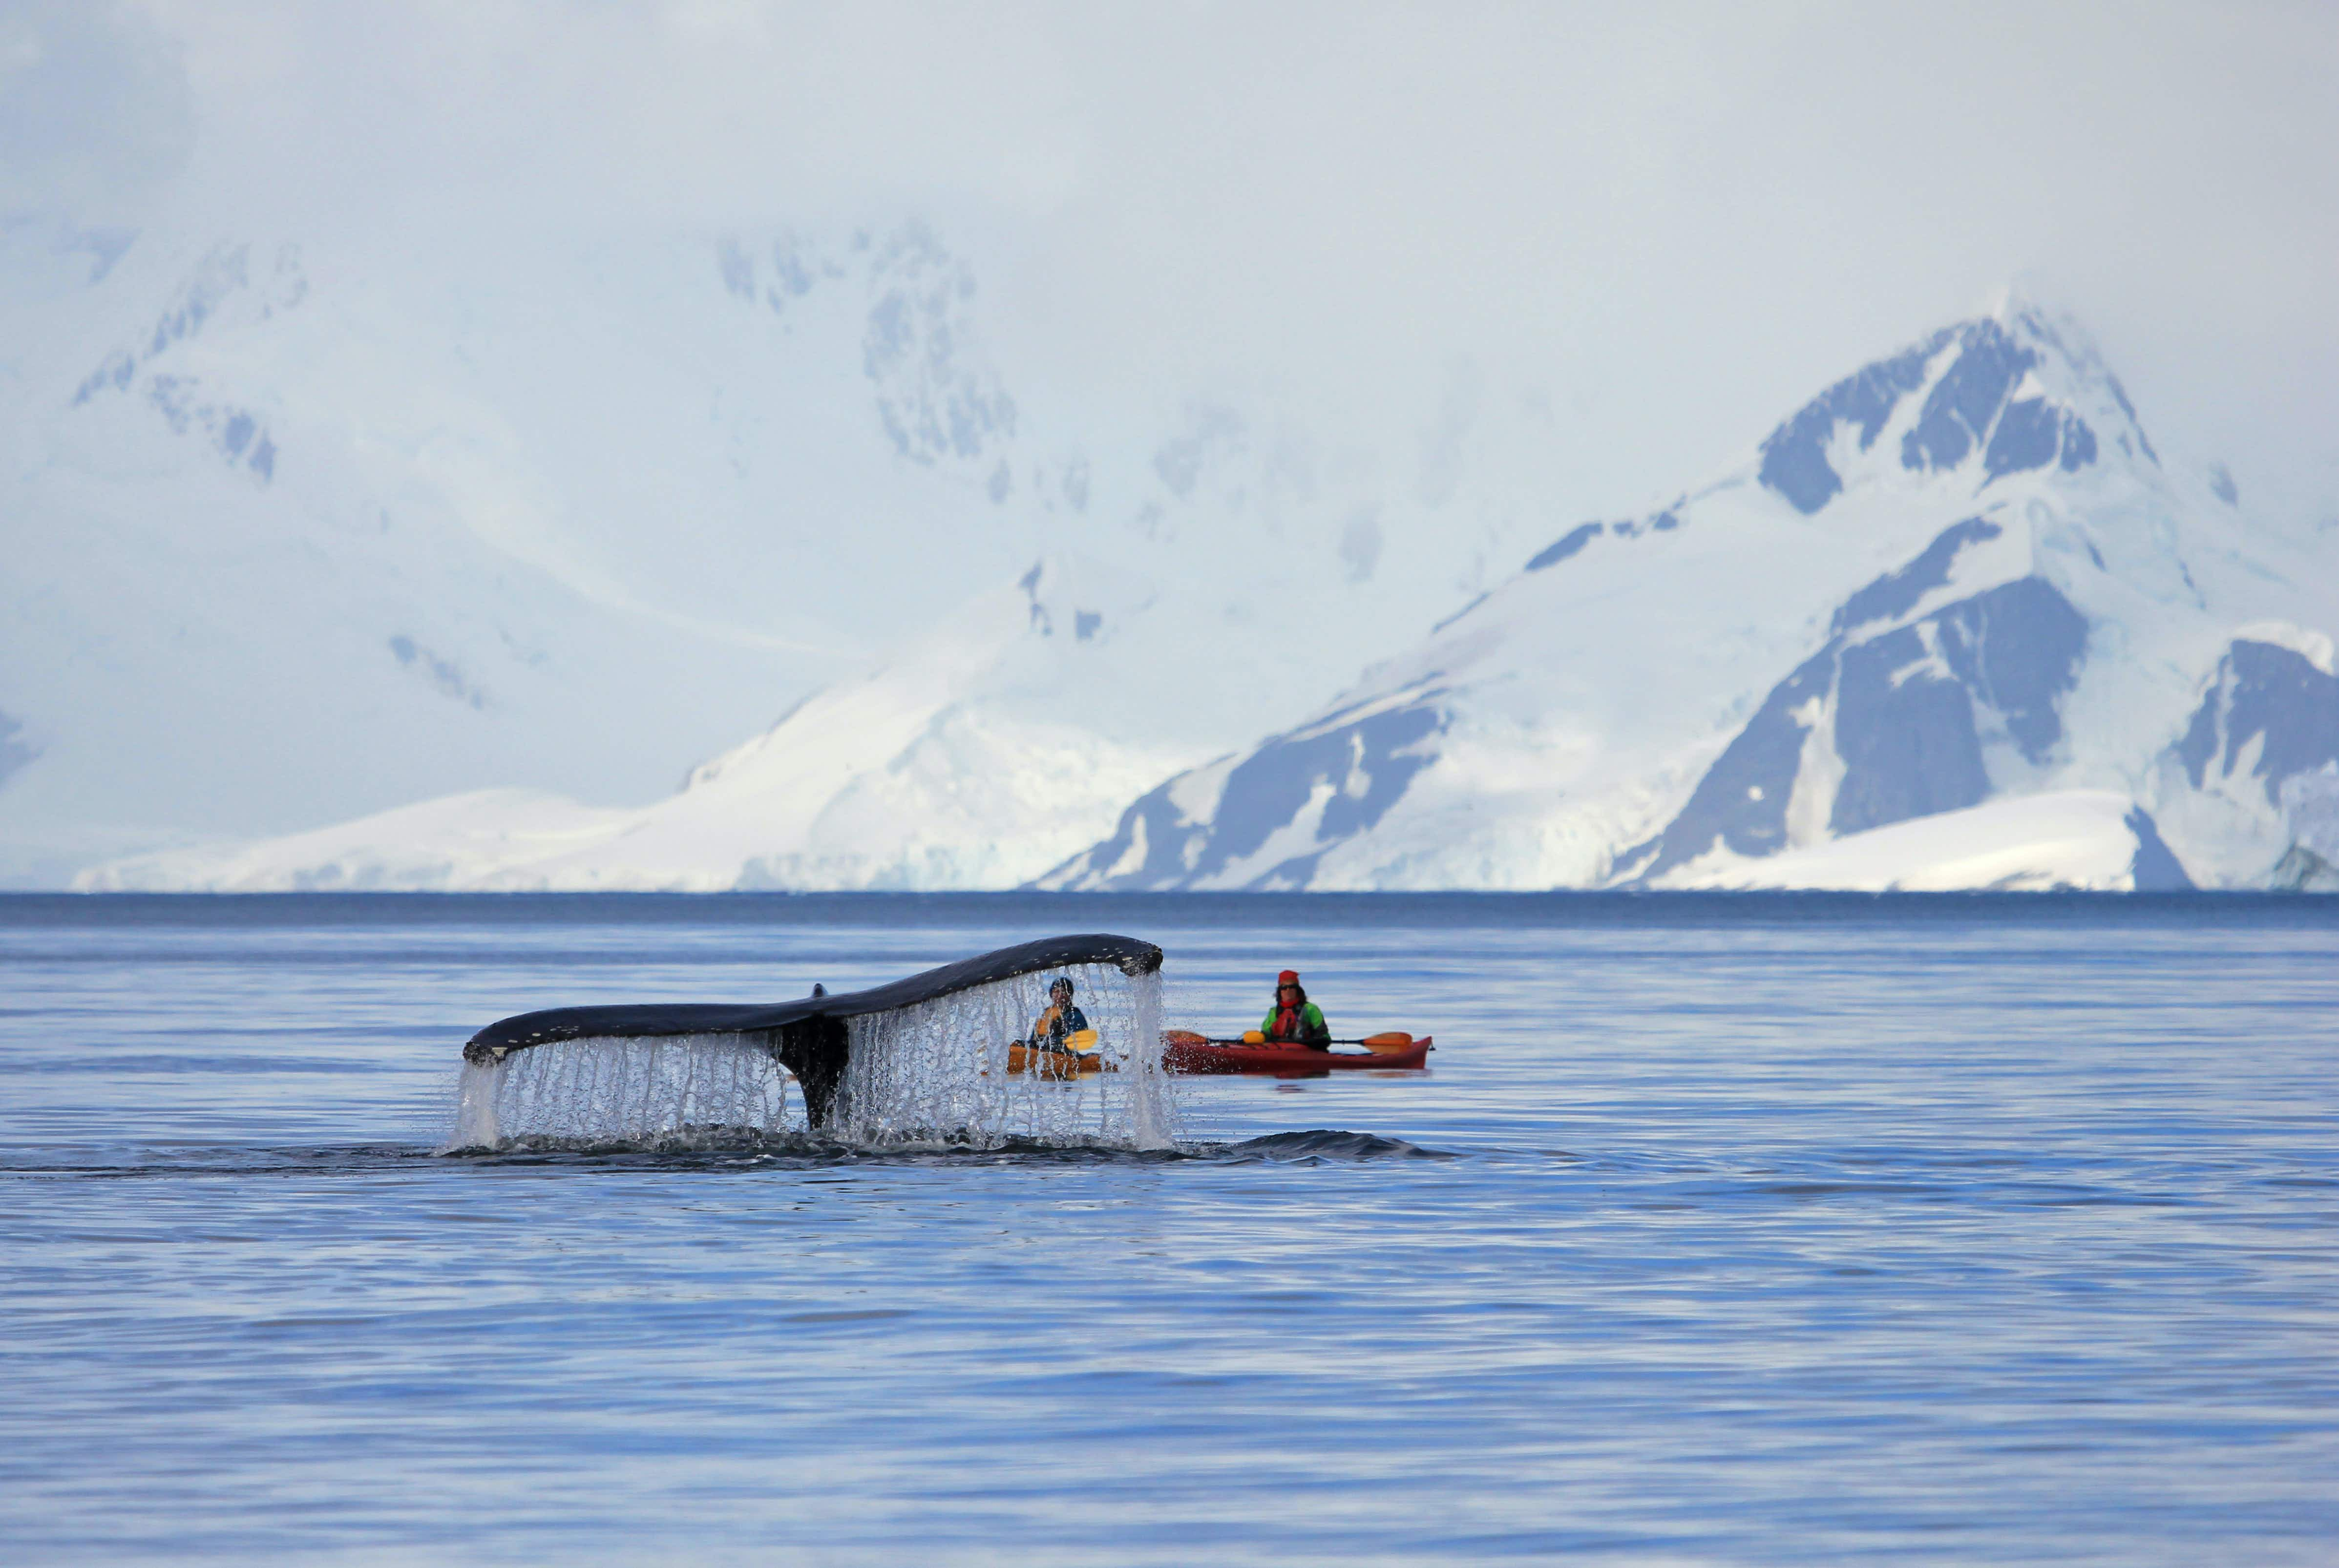 Two kayakers observe a Humpback whale tail rising from the waters surface in the Antarctic Peninsula.